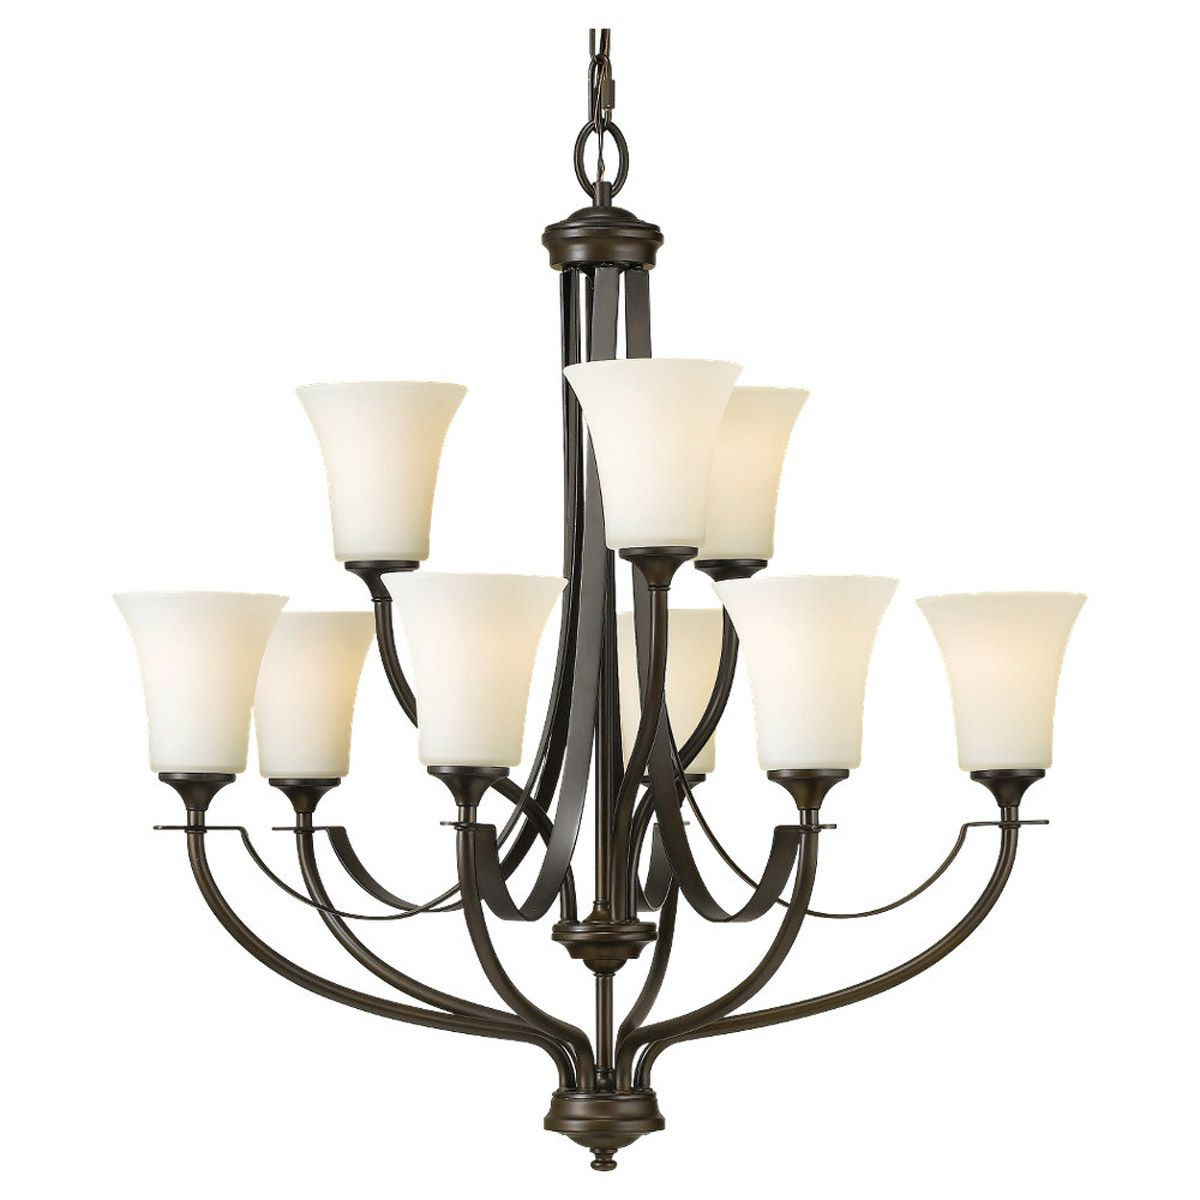 Murray Feiss Generation Brands: Feiss Barrington 9-Light Multi-Tier Chandelier In Bronze